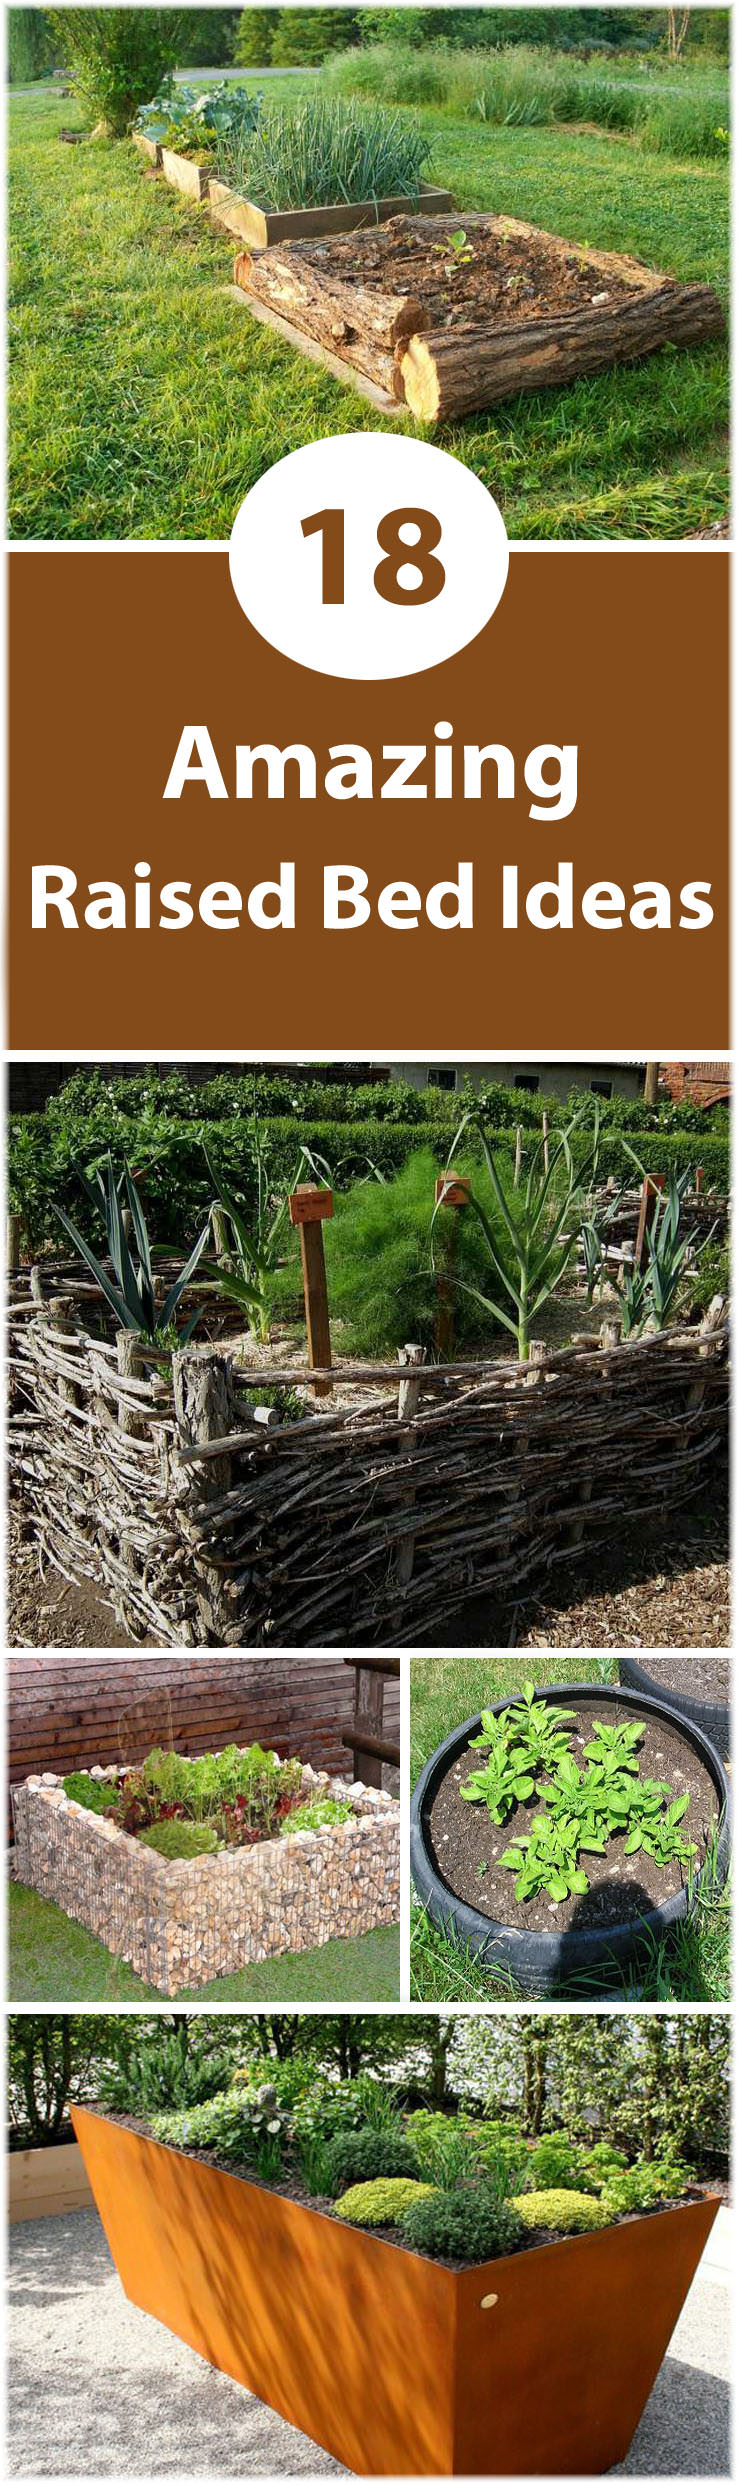 18 Great Raised Bed Ideas | Raised Bed Gardening | Balcony ... on Backyard Raised Garden Bed Ideas id=57832